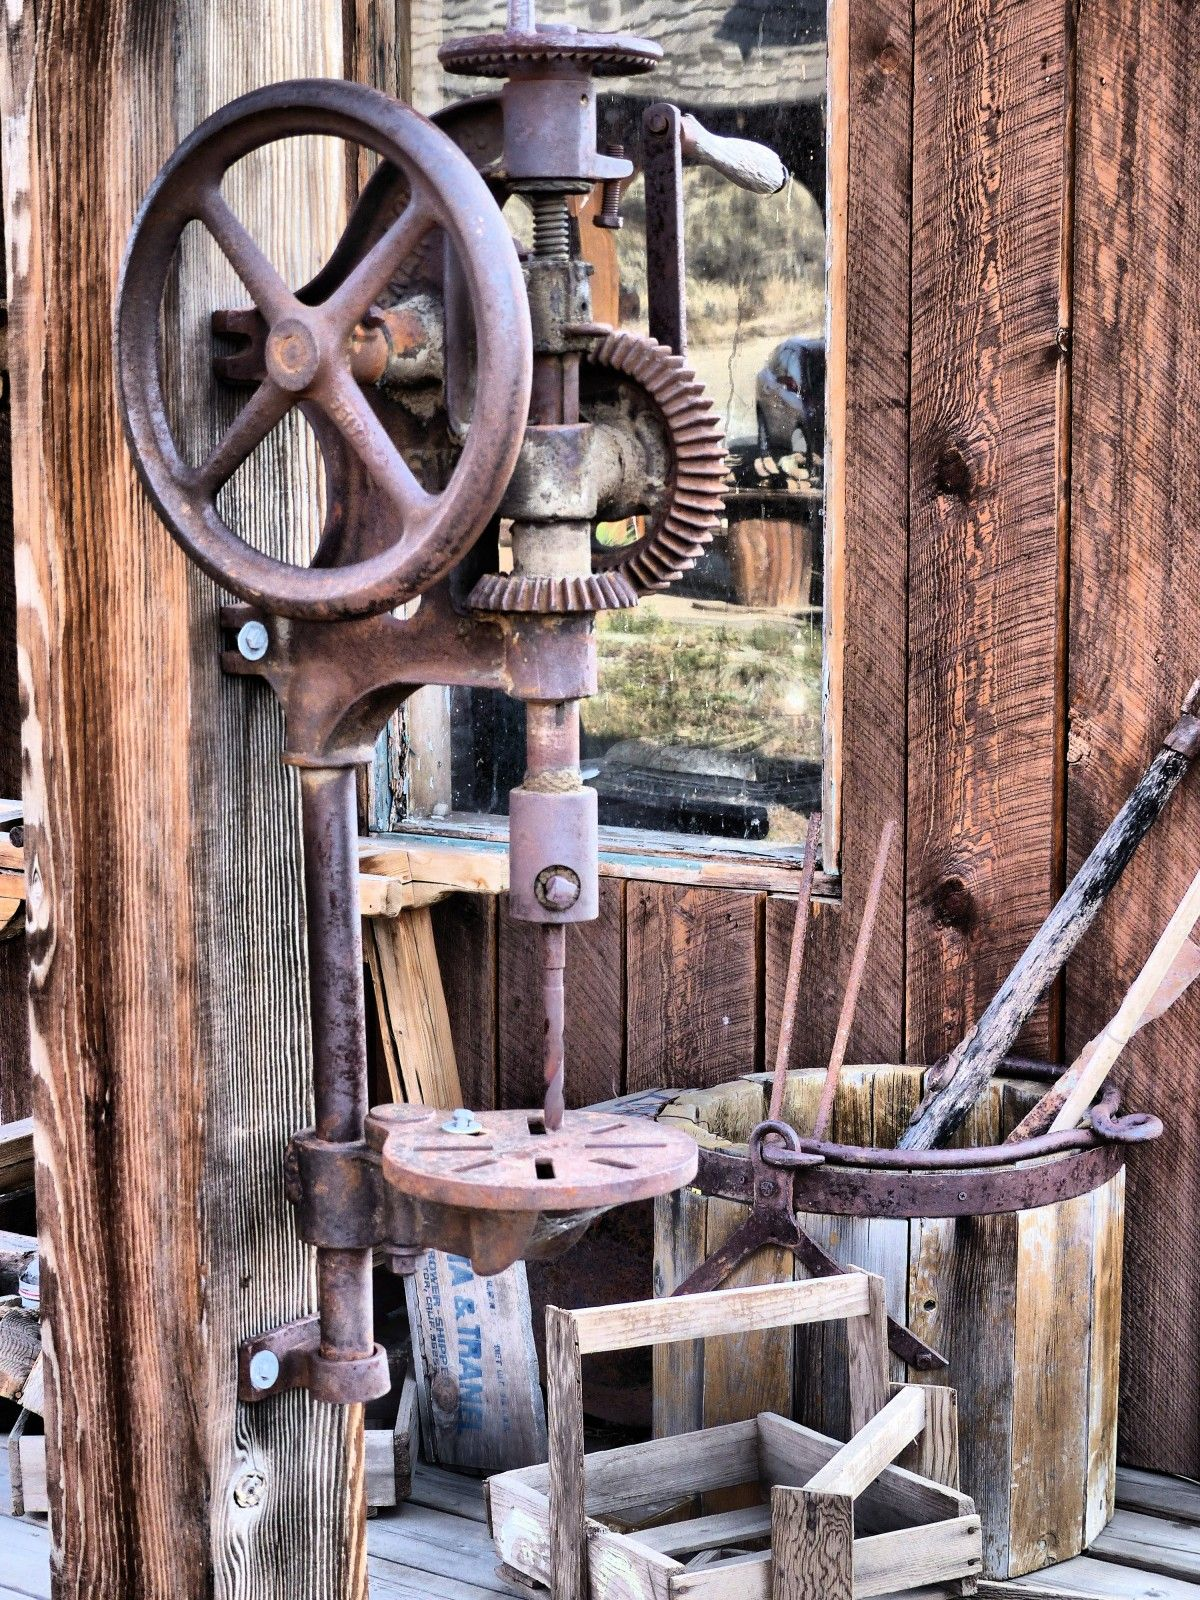 Free Images table, outdoor, wood, vintage, antique